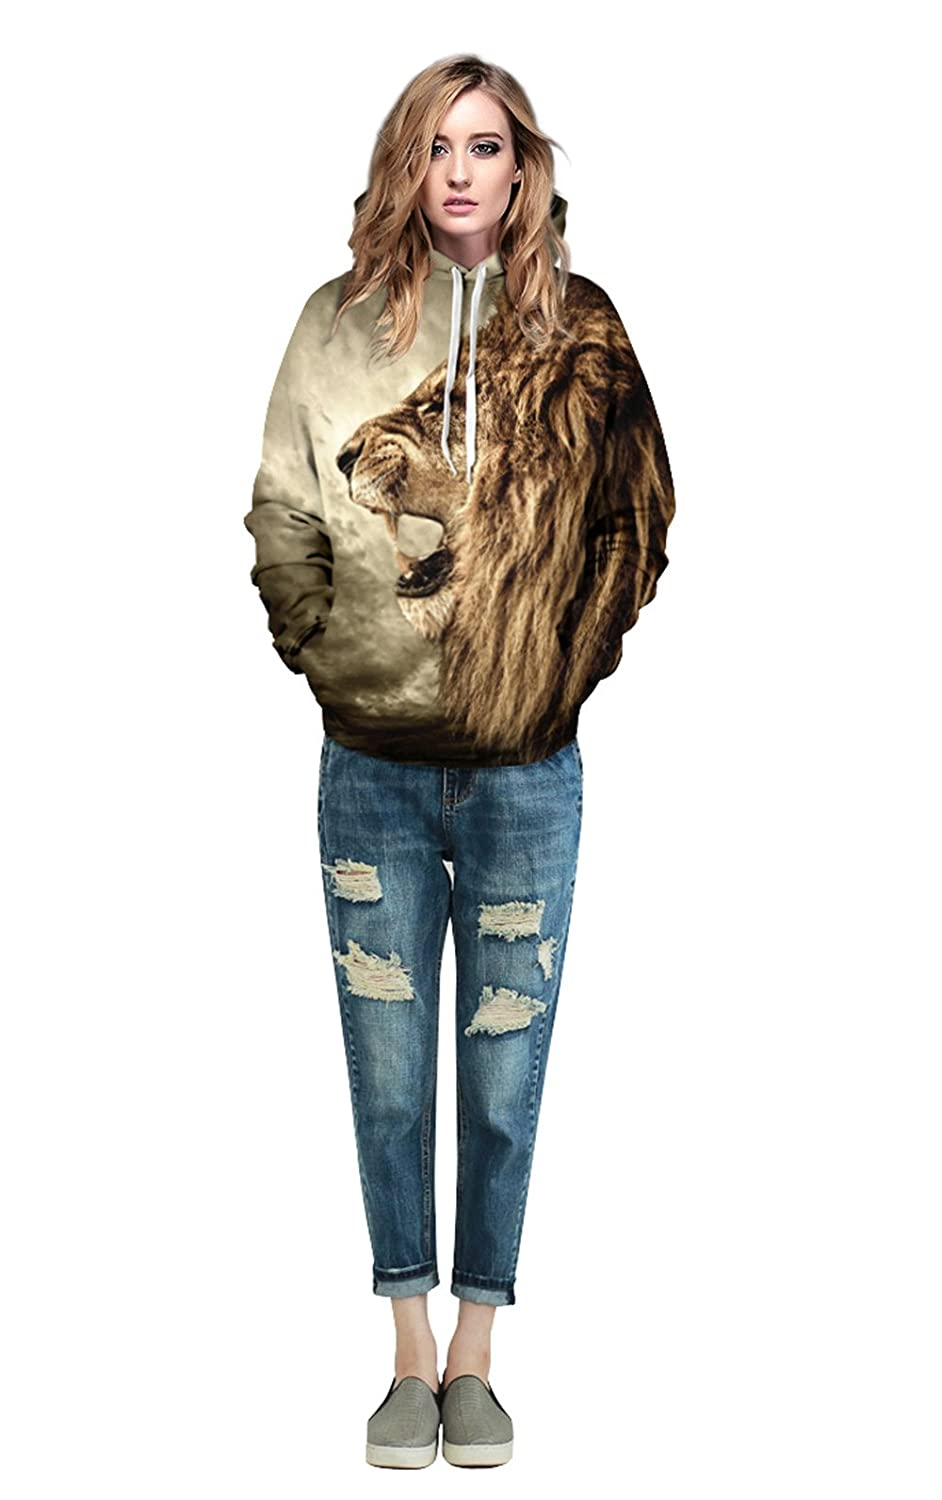 Unisex Simulation Animal Printing Pullover Pockets Hooded Sweatshirt Hoodies